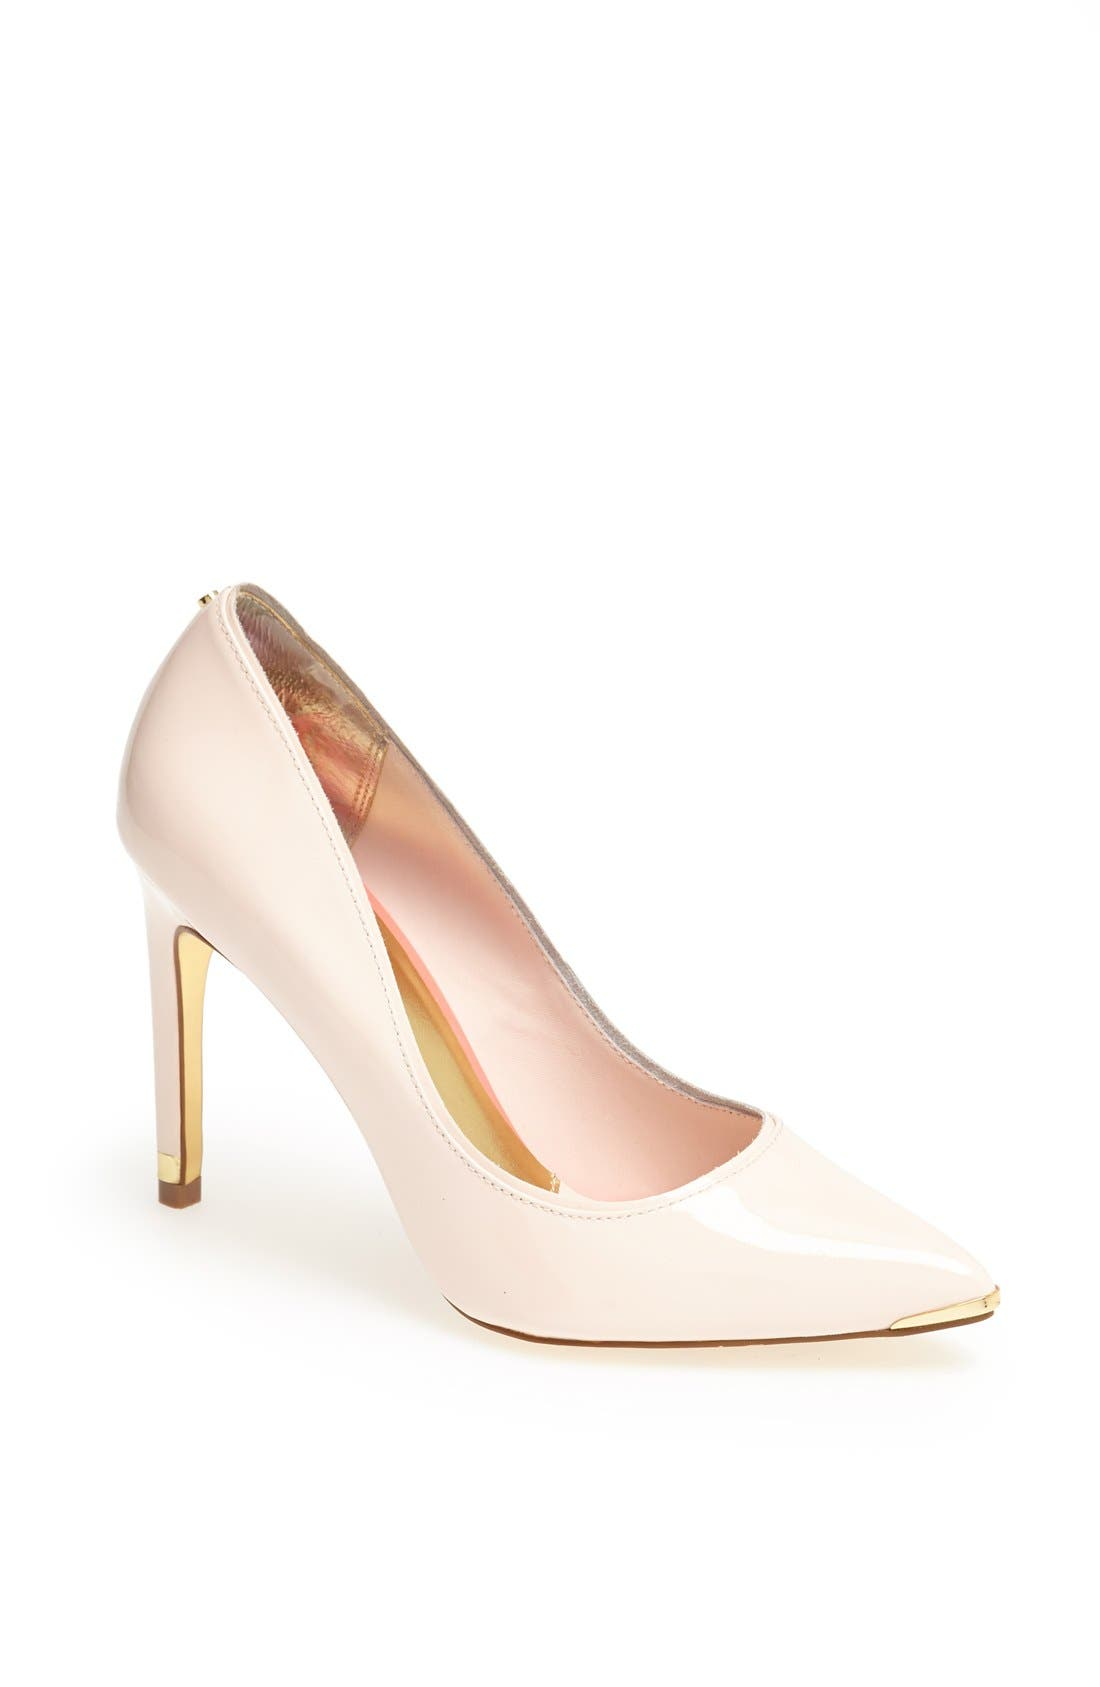 Alternate Image 1 Selected - Ted Baker London 'Thaya' Leather Pointy Toe Pump